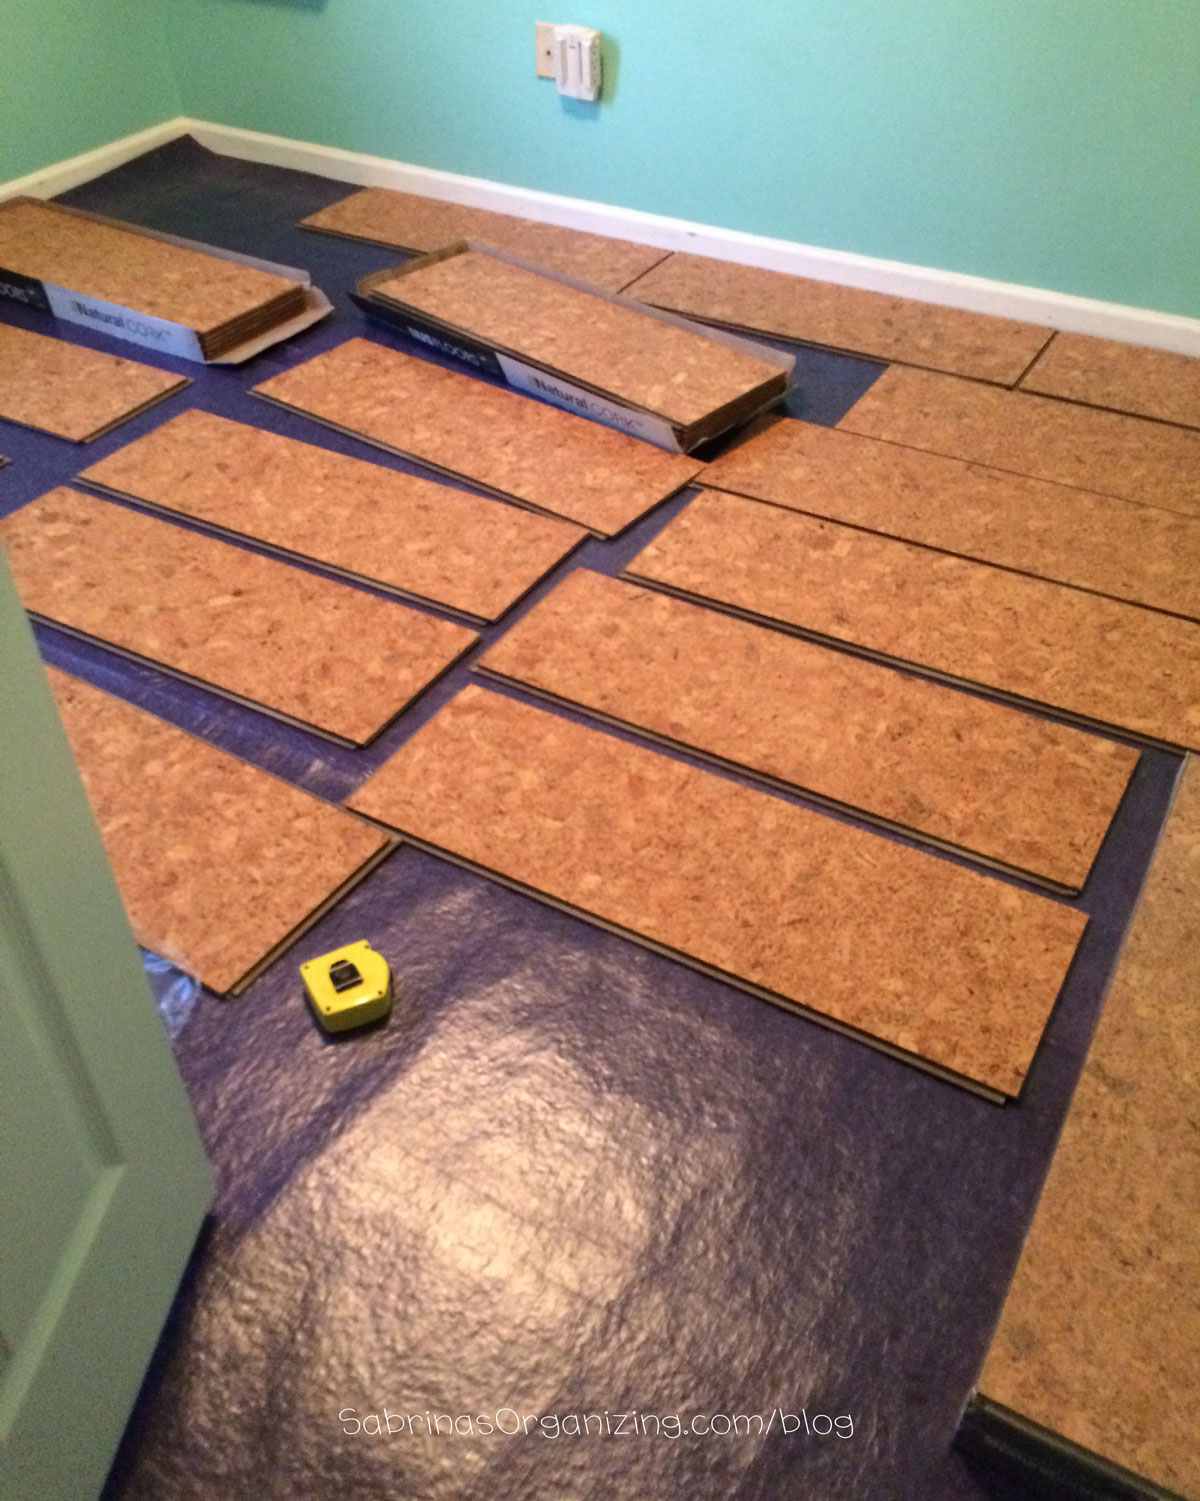 Cork Underlayment | 6mm Cork Underlayment | What to Put Under Laminate Flooring on Concrete